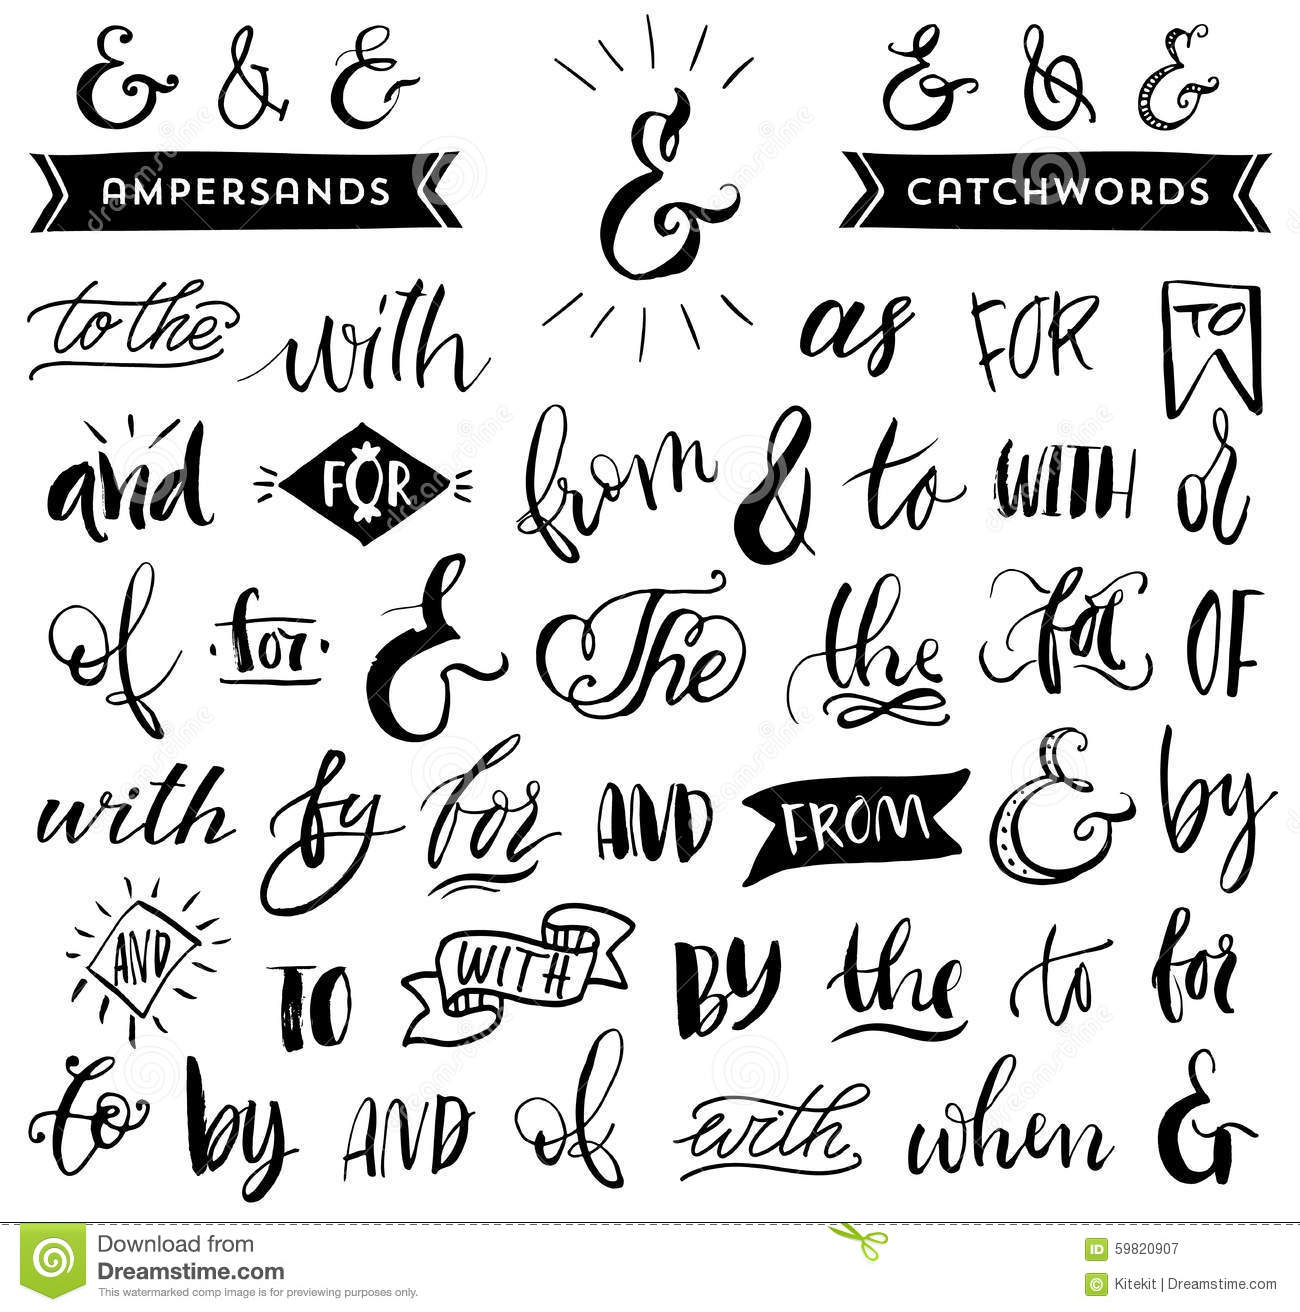 Ampersands And Catchwords. Handwritten Calligraphy Lettering Stock ...